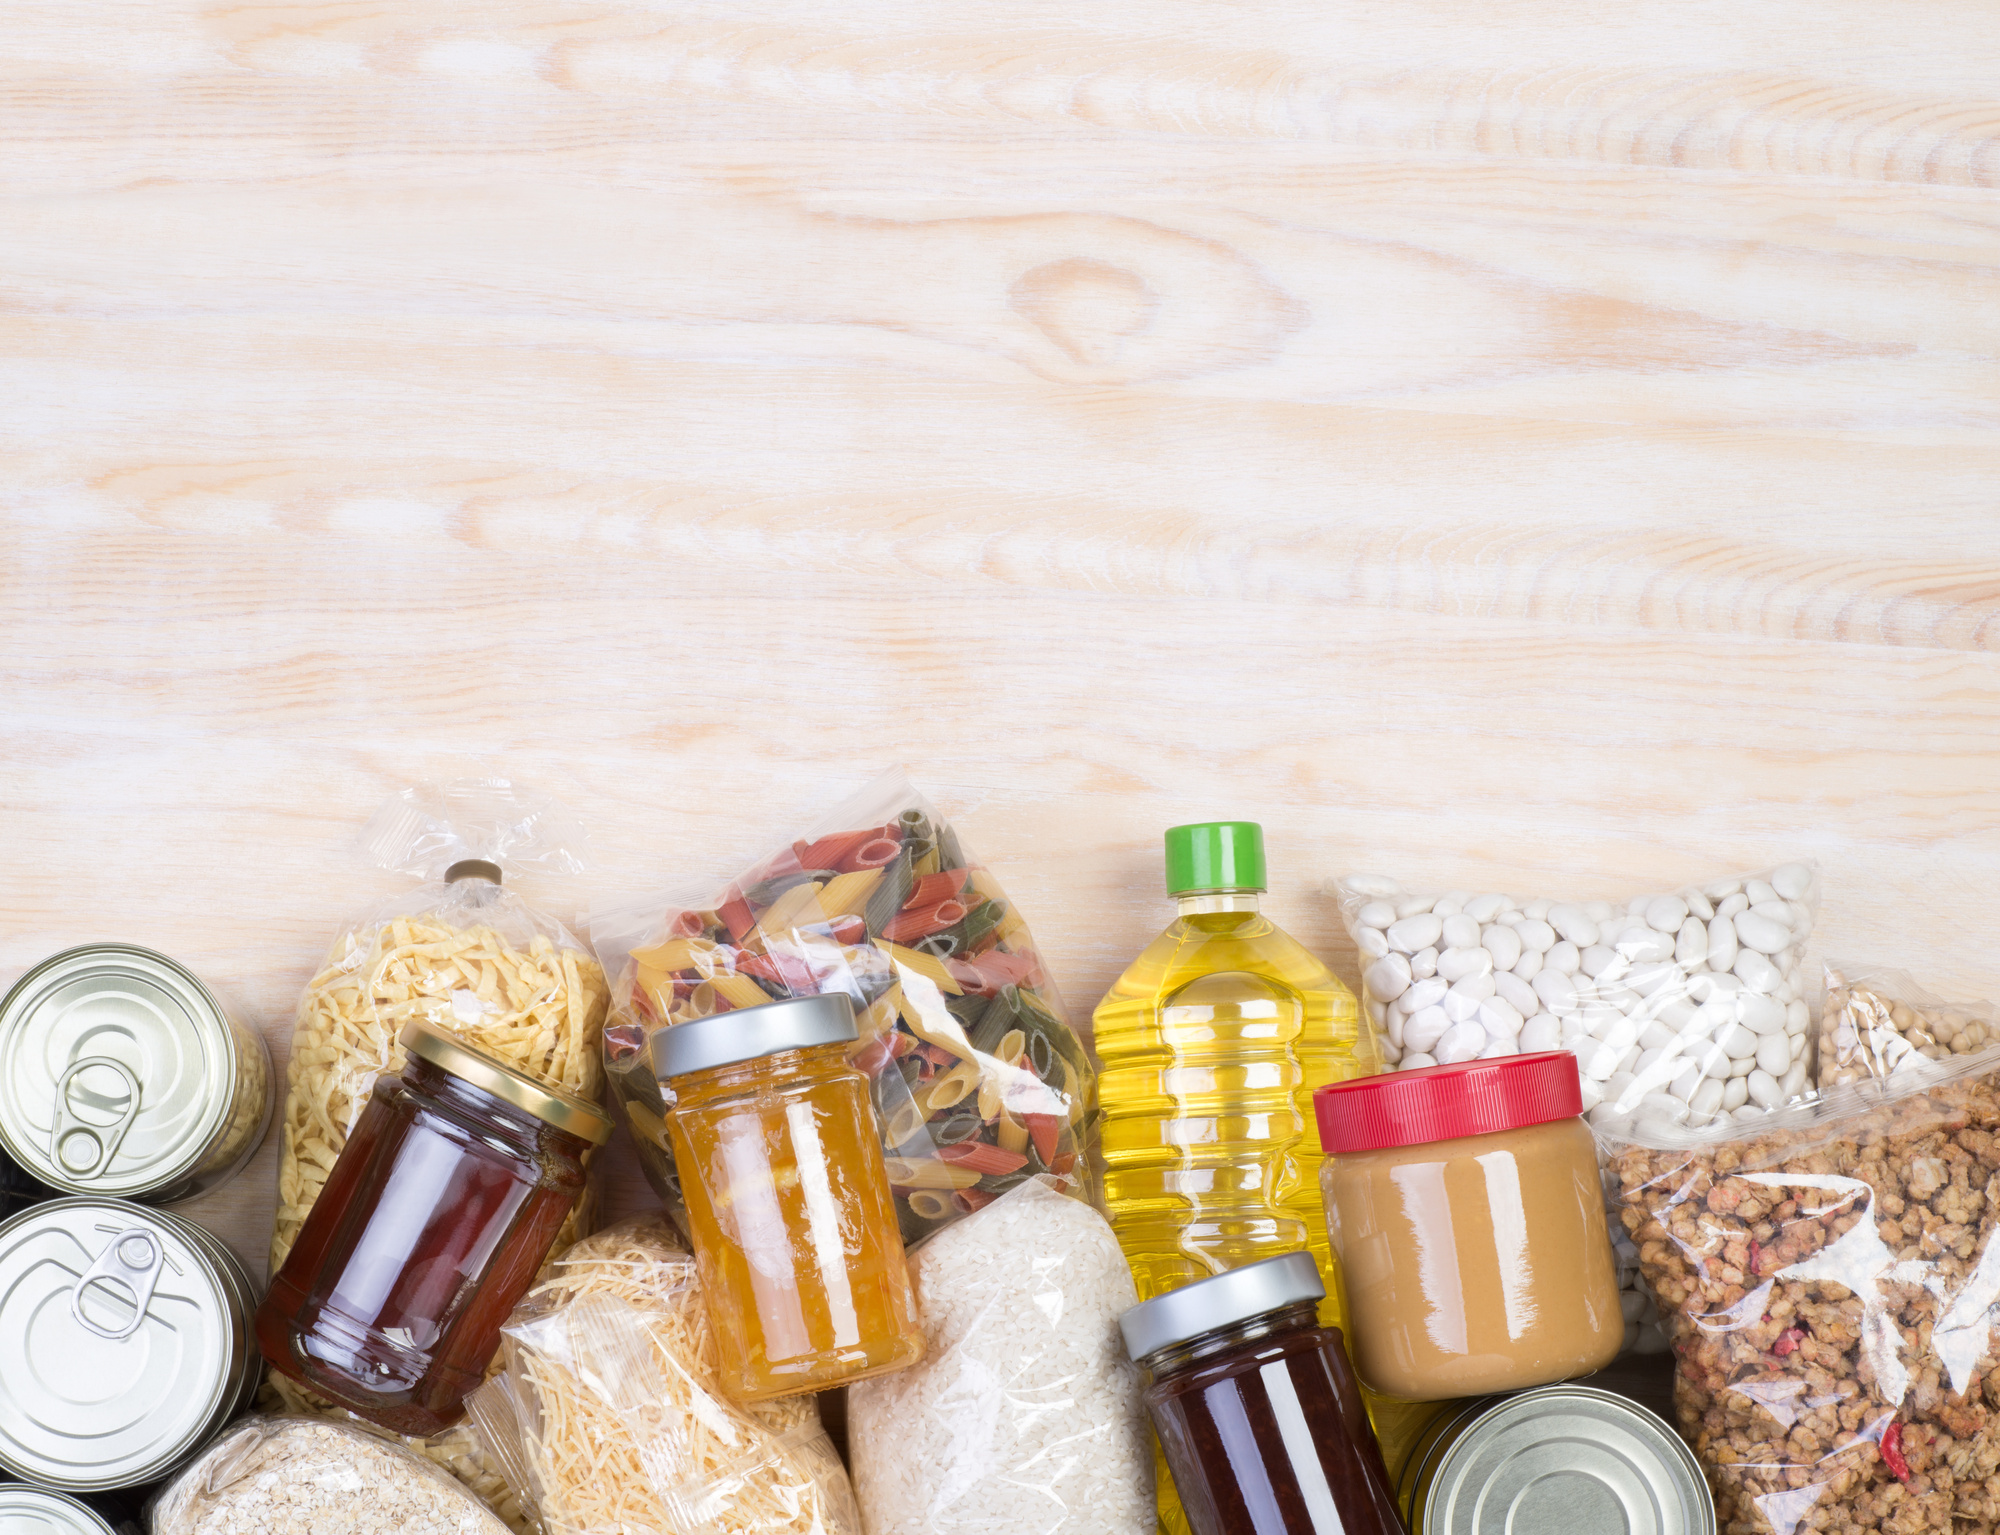 Food donations on wooden background, top view with copy space